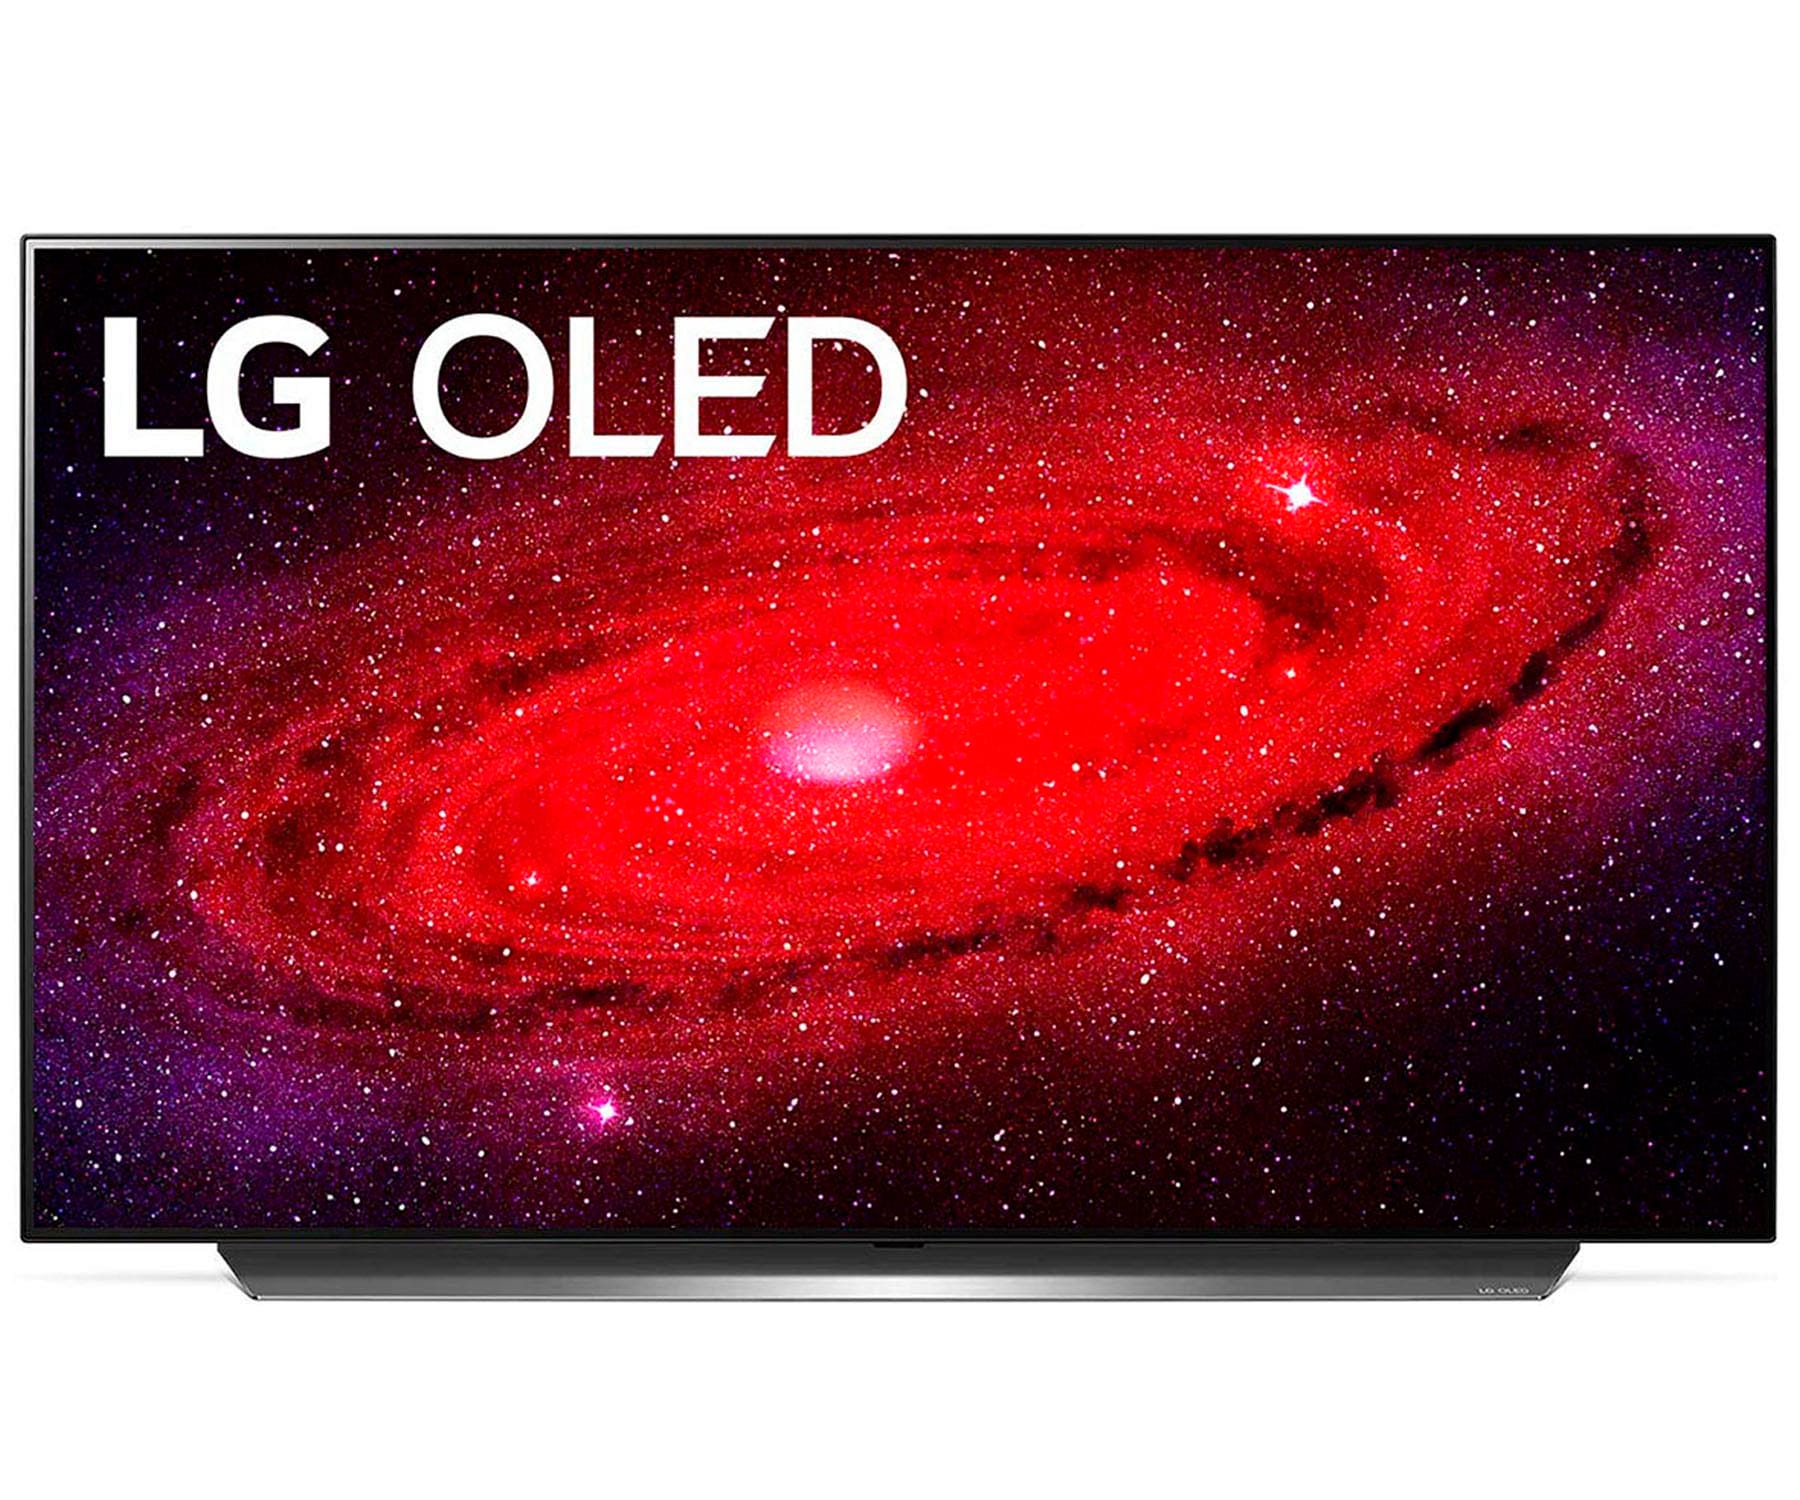 LG 48CX6LB TELEVISOR 48'' OLED UHD 4K HDR THINQ SMART TV IA WEBOS 5.0 WIFI BLUETOOTH SONIDO DOLBY ATMOS